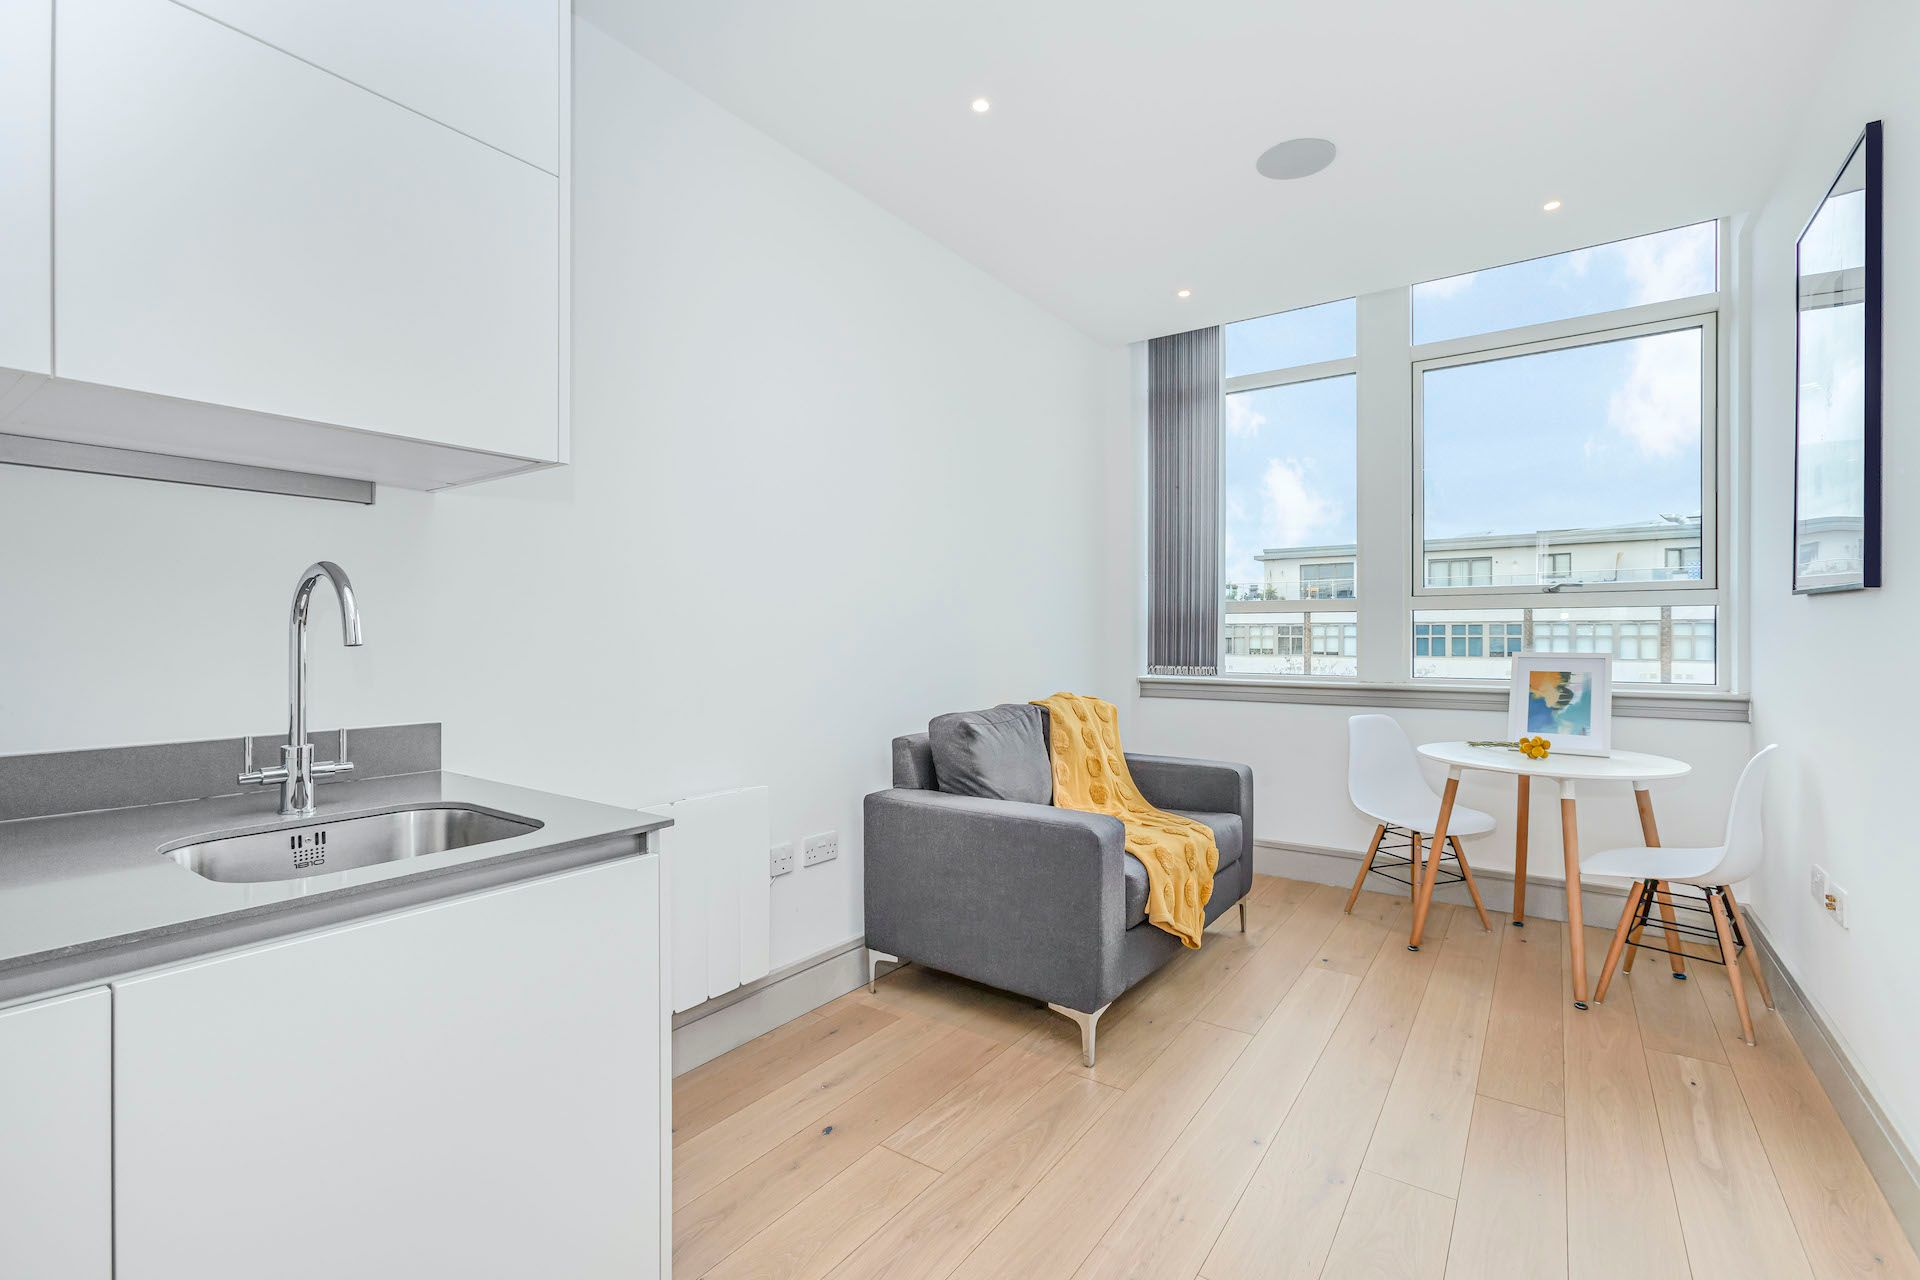 1 Bedroom apartment to rent in London BRO-BH-0193